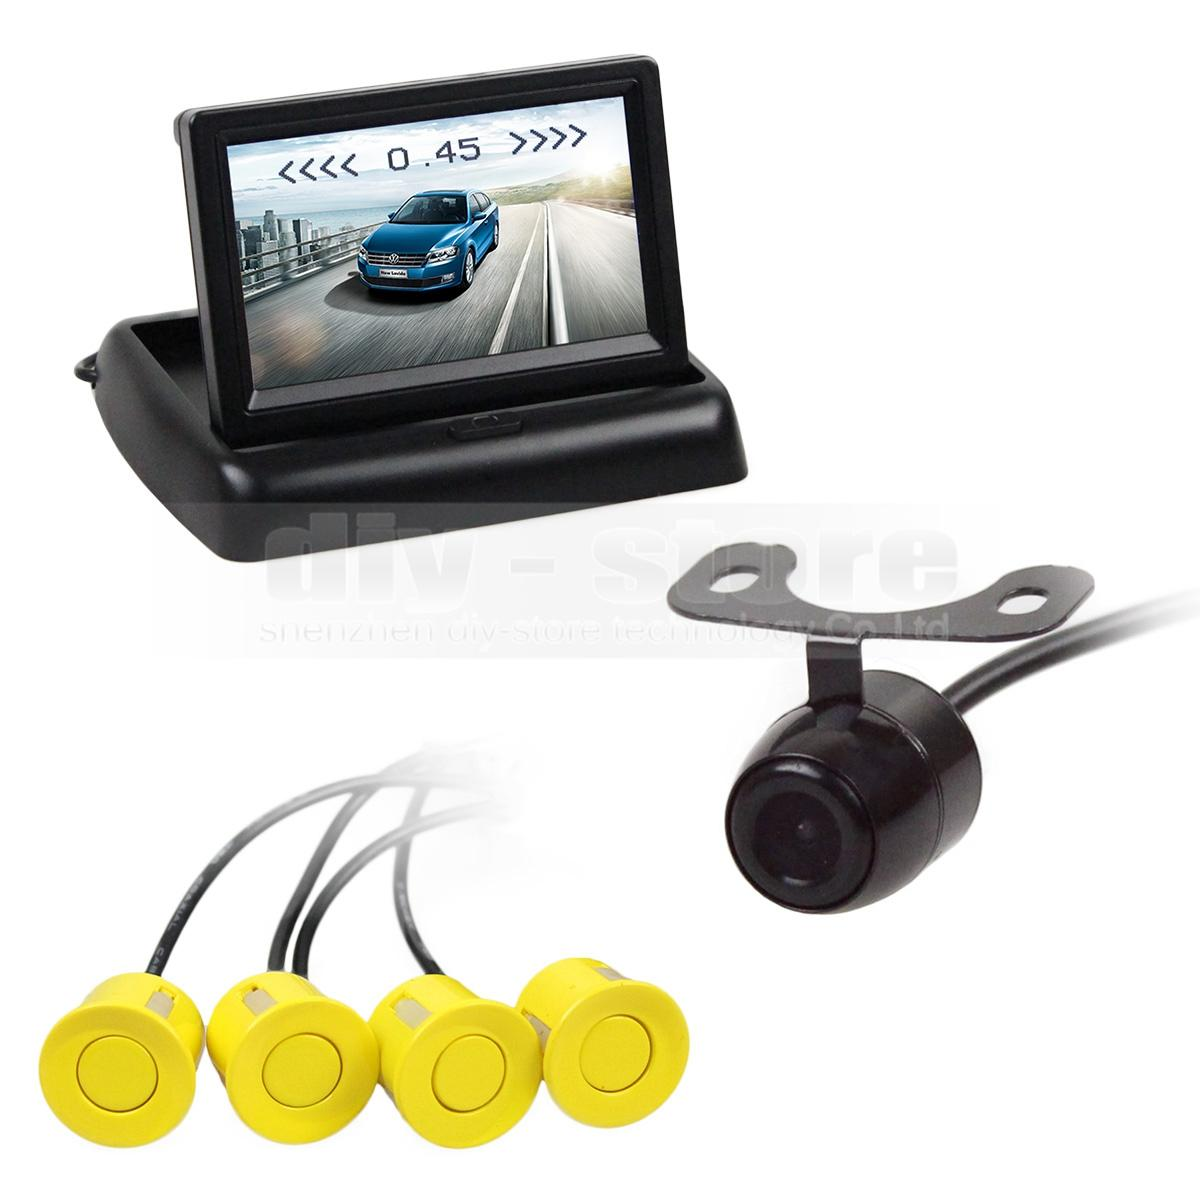 Vídeo Estacionamento Radar 4.3 Polegadas Dobrável Rear View Monitor Do Carro + 4 Sensores de Estacionamento + Câmera Do Carro Da Vista Traseira